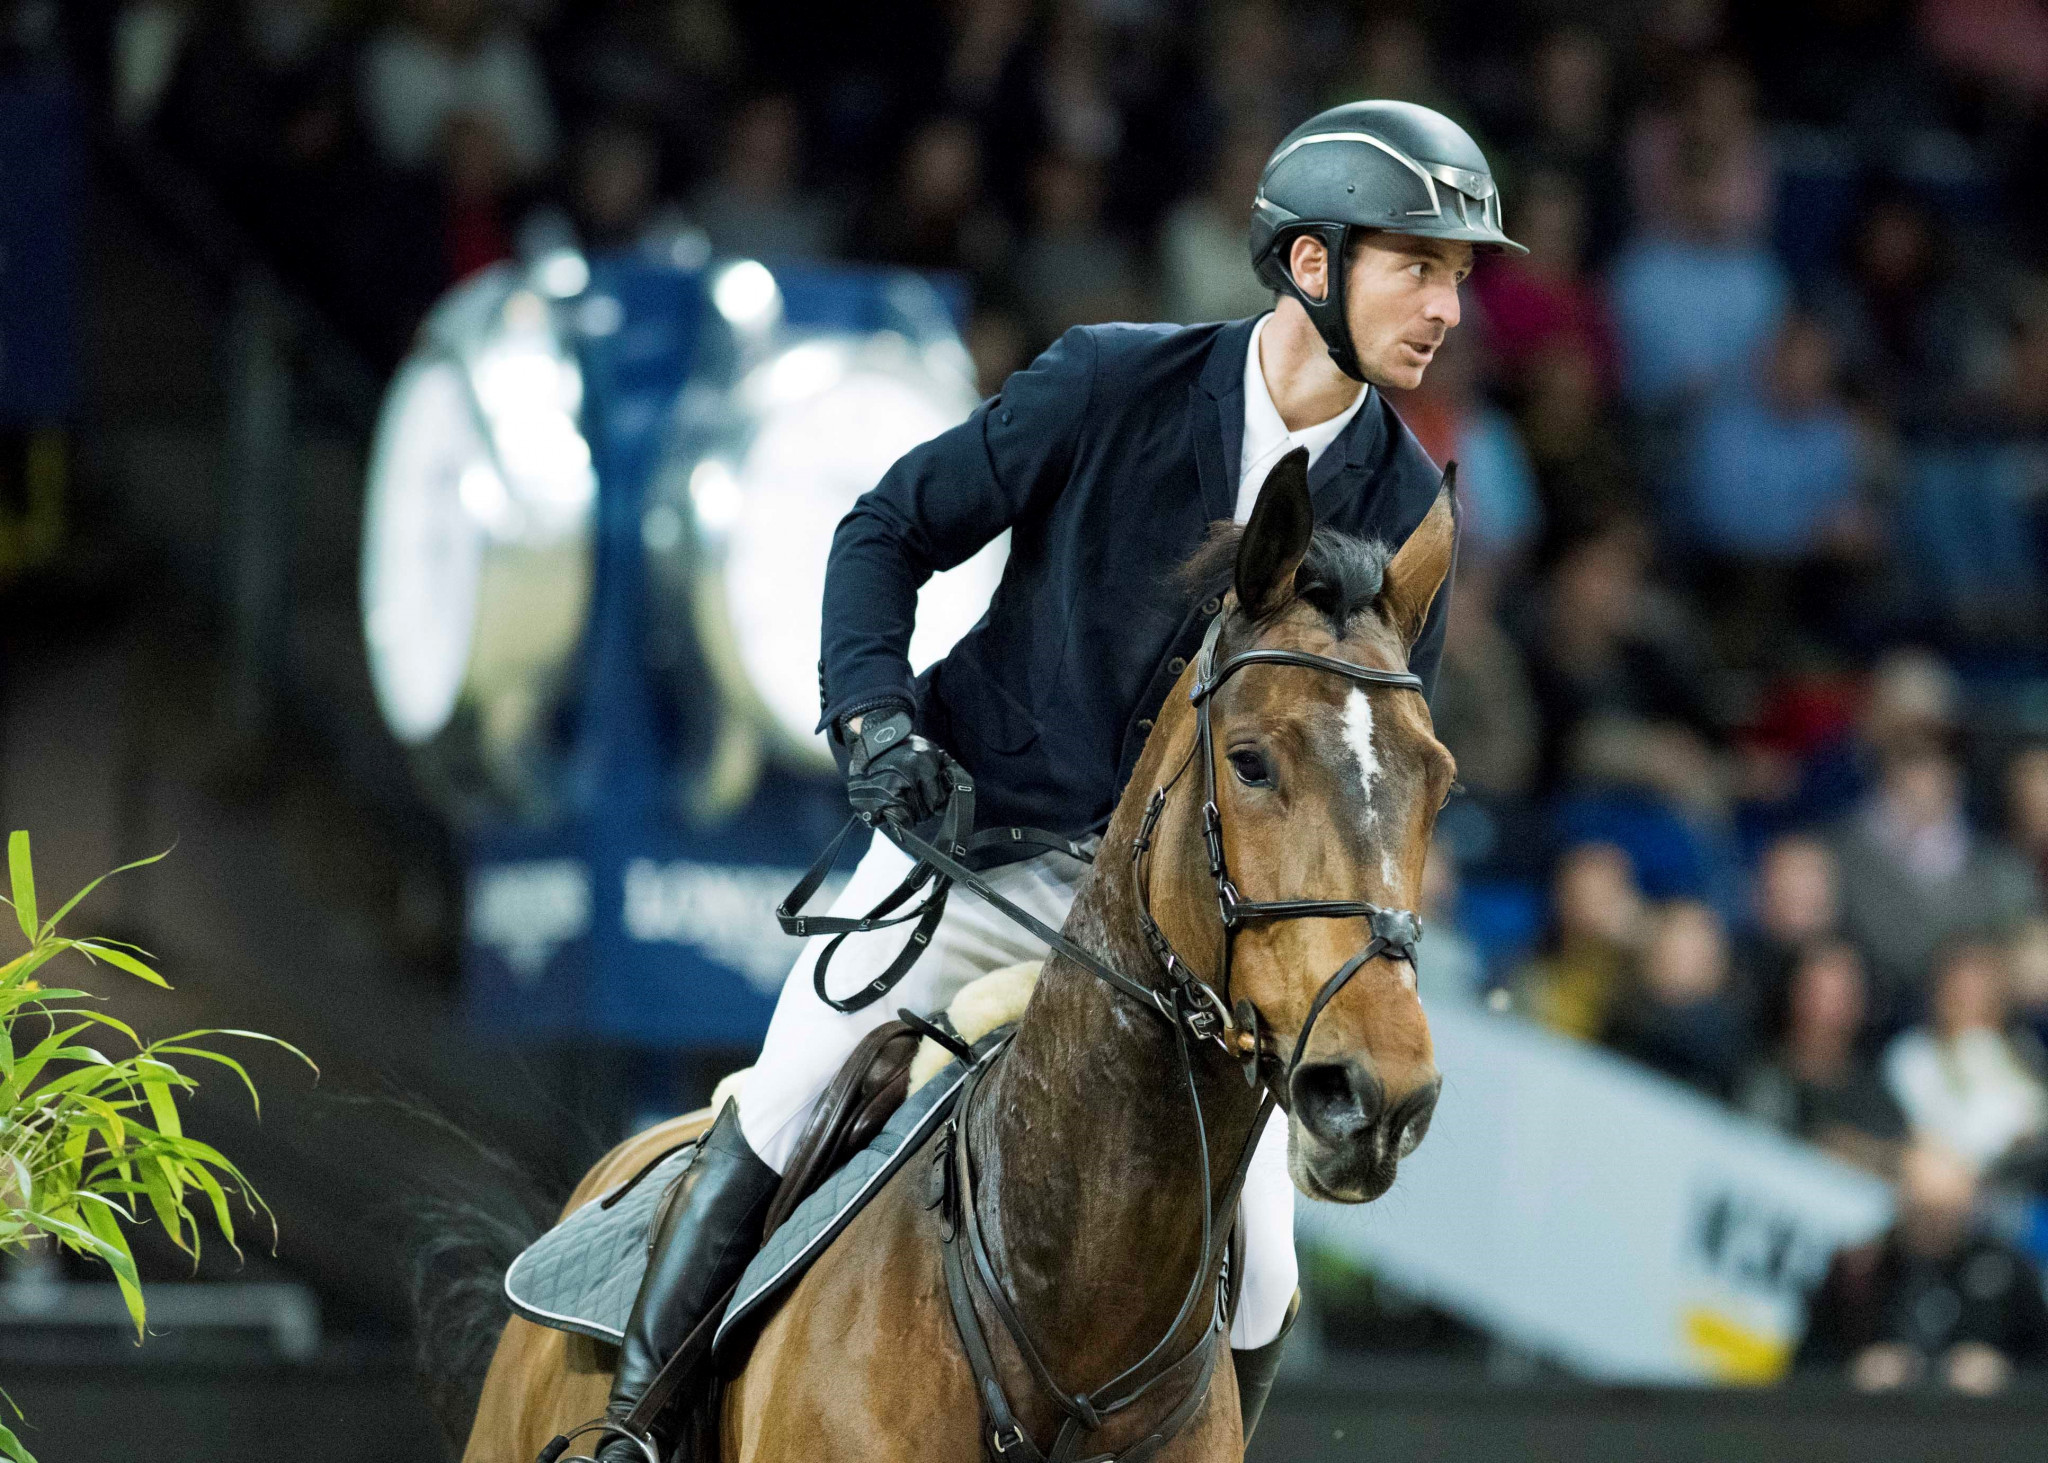 Swiss Olympian Guerdat tops FEI jumping rankings for first time in six years